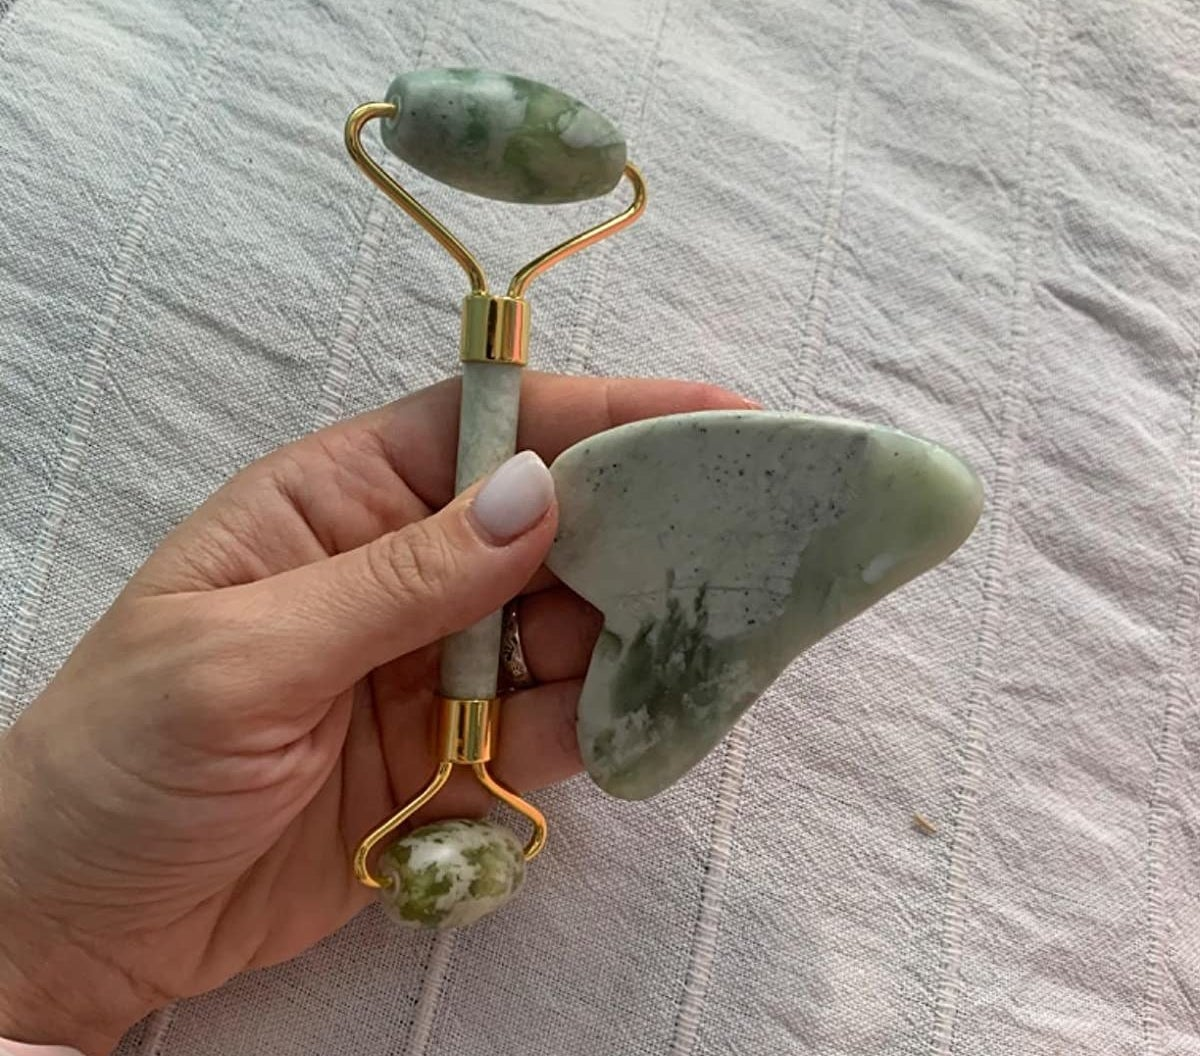 A reviewer holding the green double-sided roller and gua sha